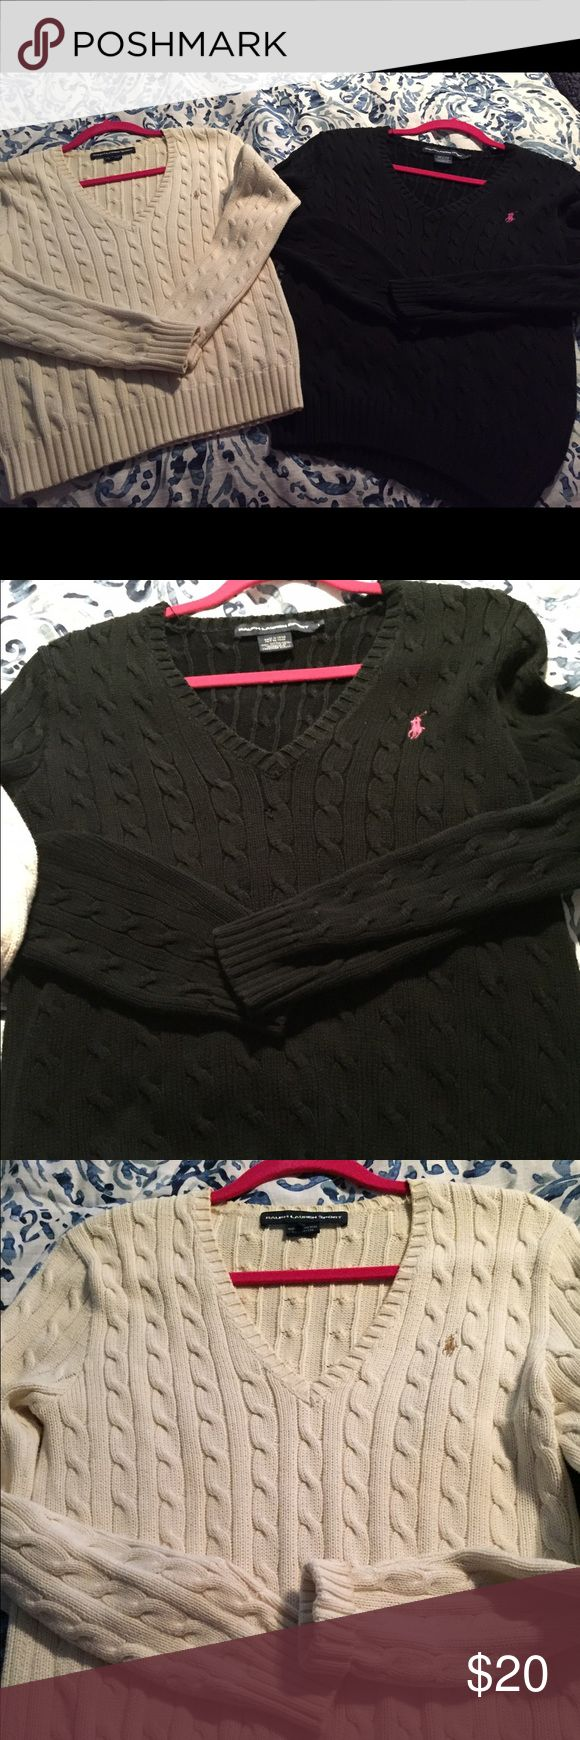 Bundle of 2 Ralph Lauren sweaters. Bundle of 2 Ralph Lauren Women's sweaters. One Black and one cream. Price is for both sweaters. Size Large. Ralph Lauren runs small so fits like a Medium100 percent cotton. Ralph Lauren Sweaters V-Necks